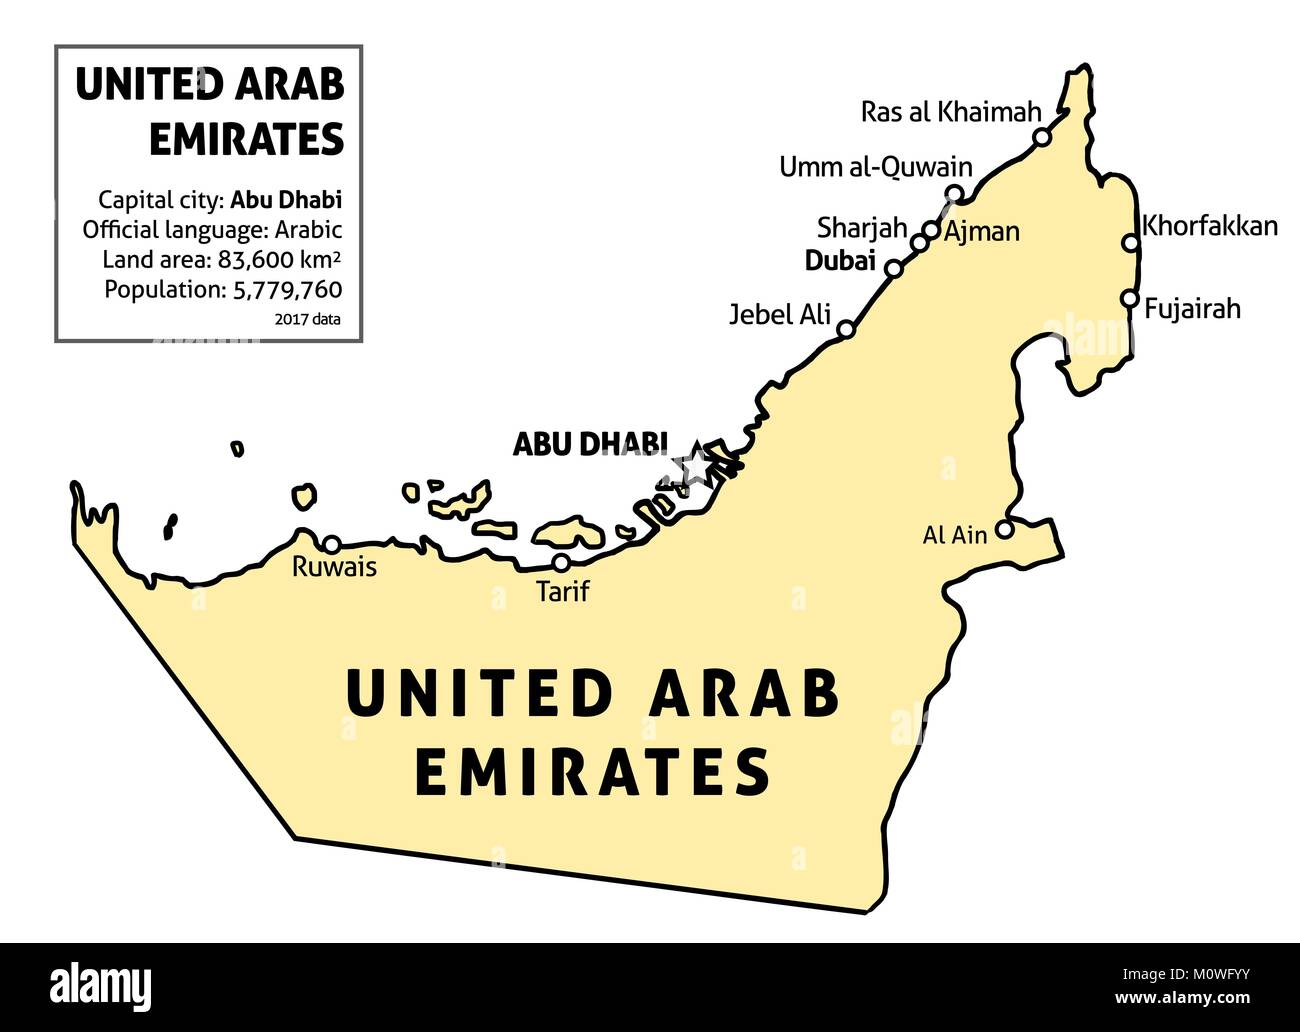 united arab emirates uae map outline vector country map with main cities and data table